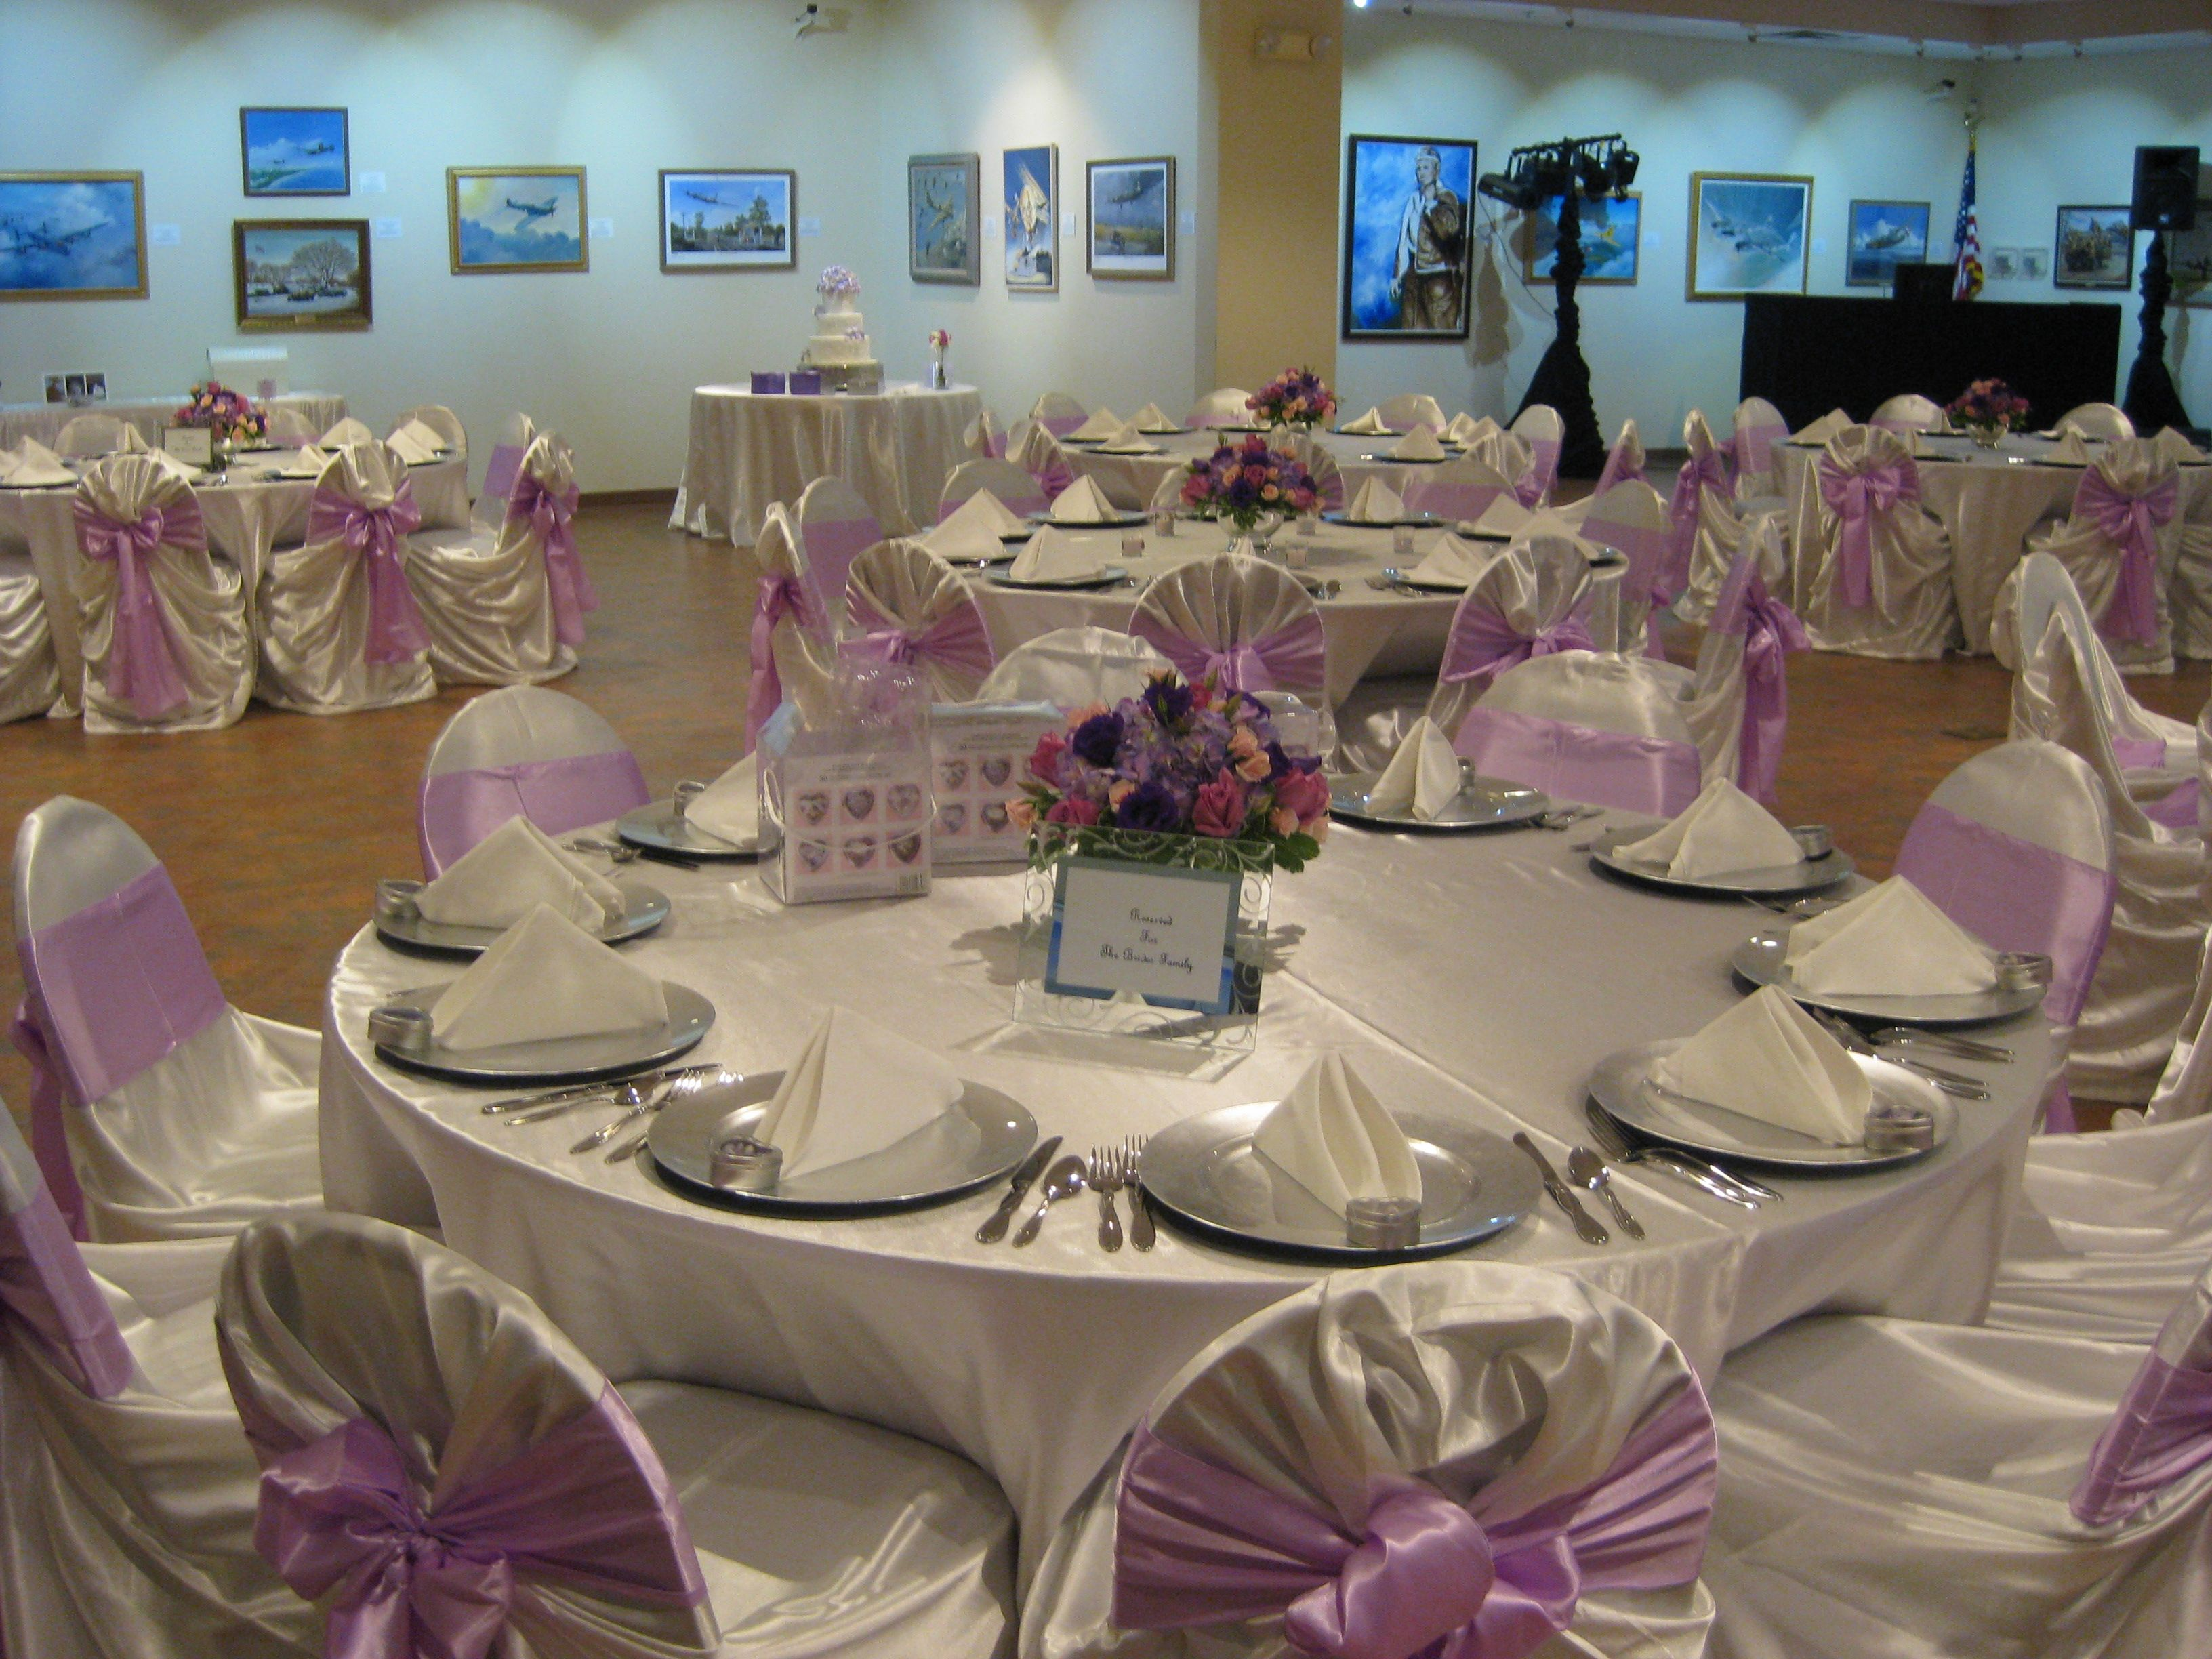 Art Gallery wedding at National Museum of the Mighty